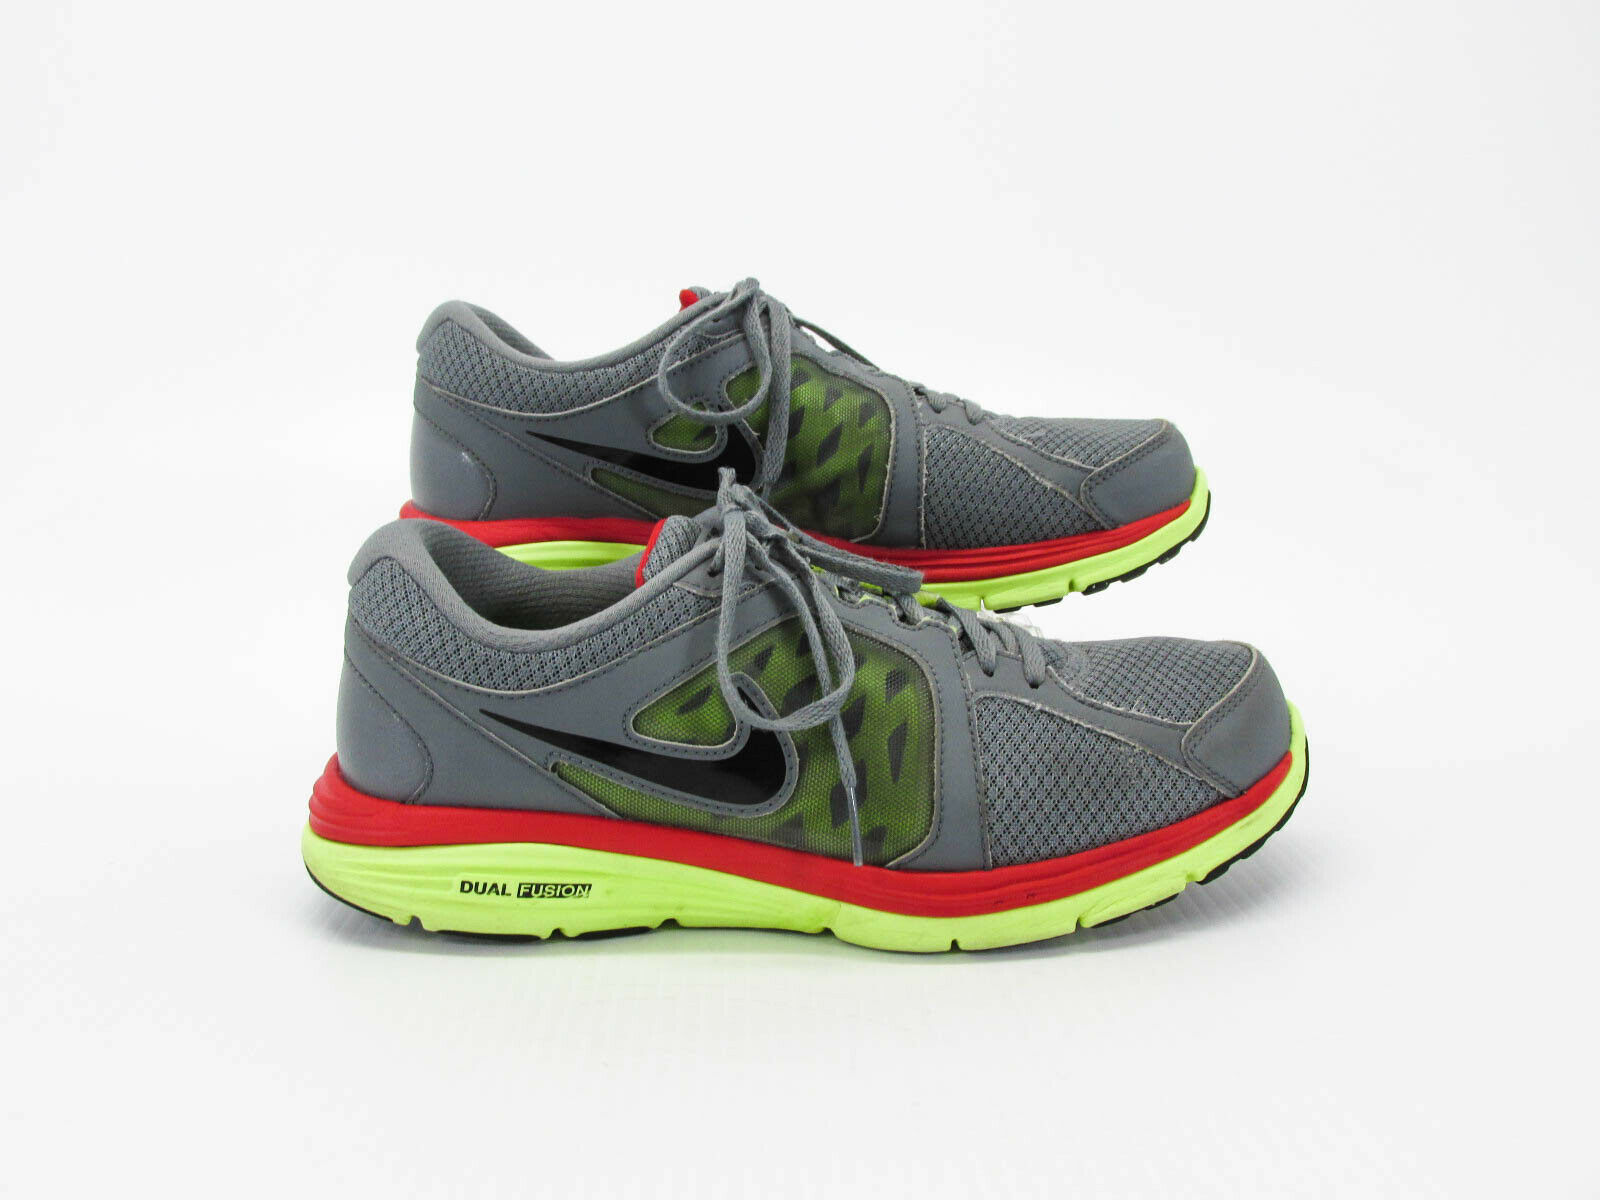 Nike Dual Fusion Run Men Athletic Running shoes Size 10M Pre Owned FJ